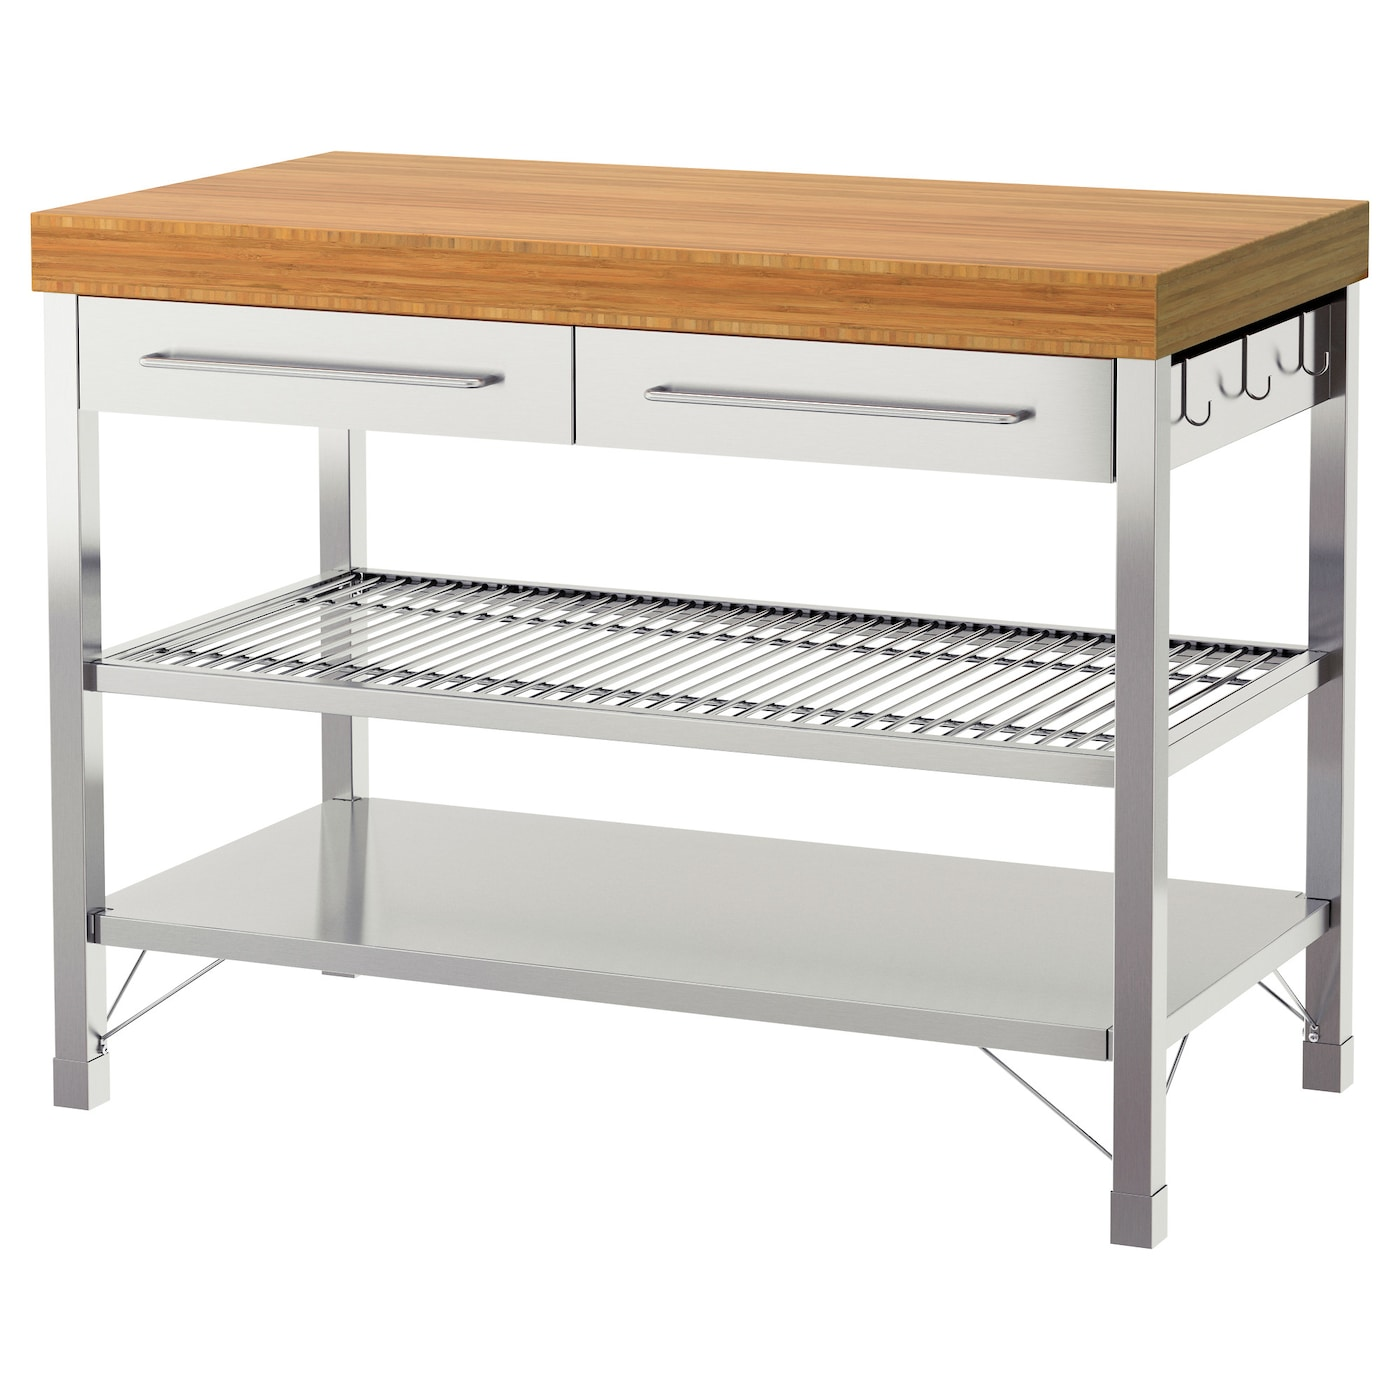 Ikea Rimforsa Work Bench Gives You Extra Storage Utility And E